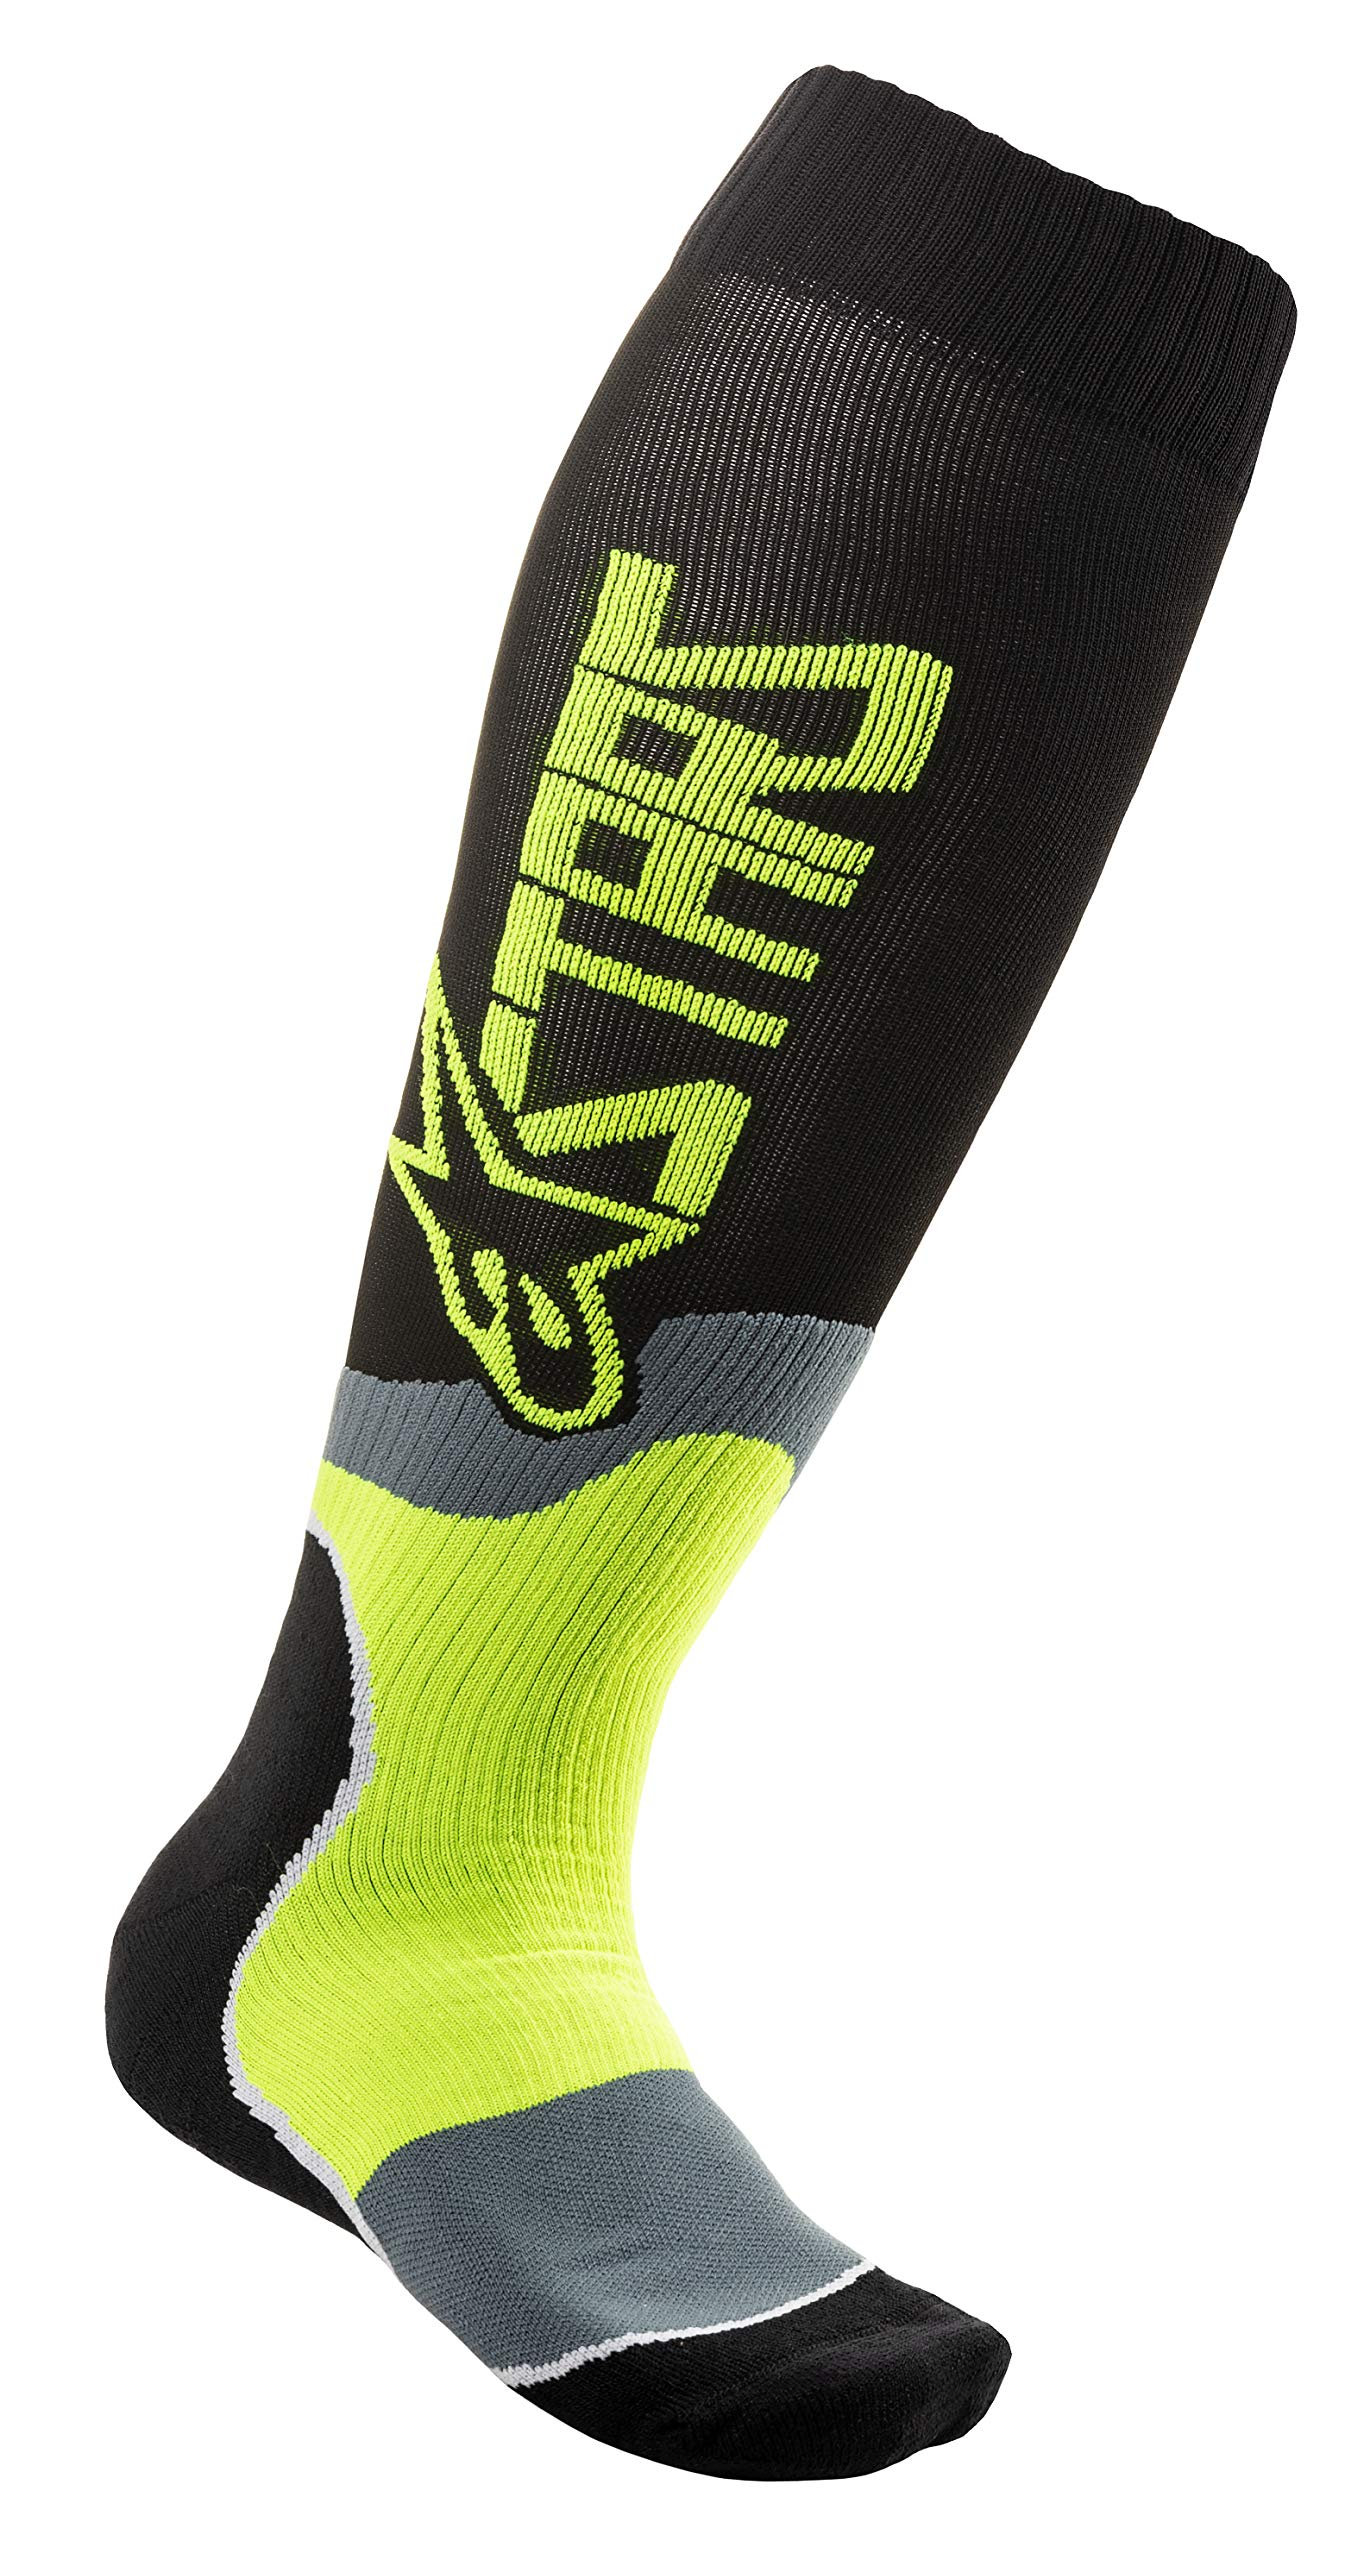 ALPINESTARS YOUTH MX PLUS-2 SOCKS (BLACK/YELLOW) by Alpinestars